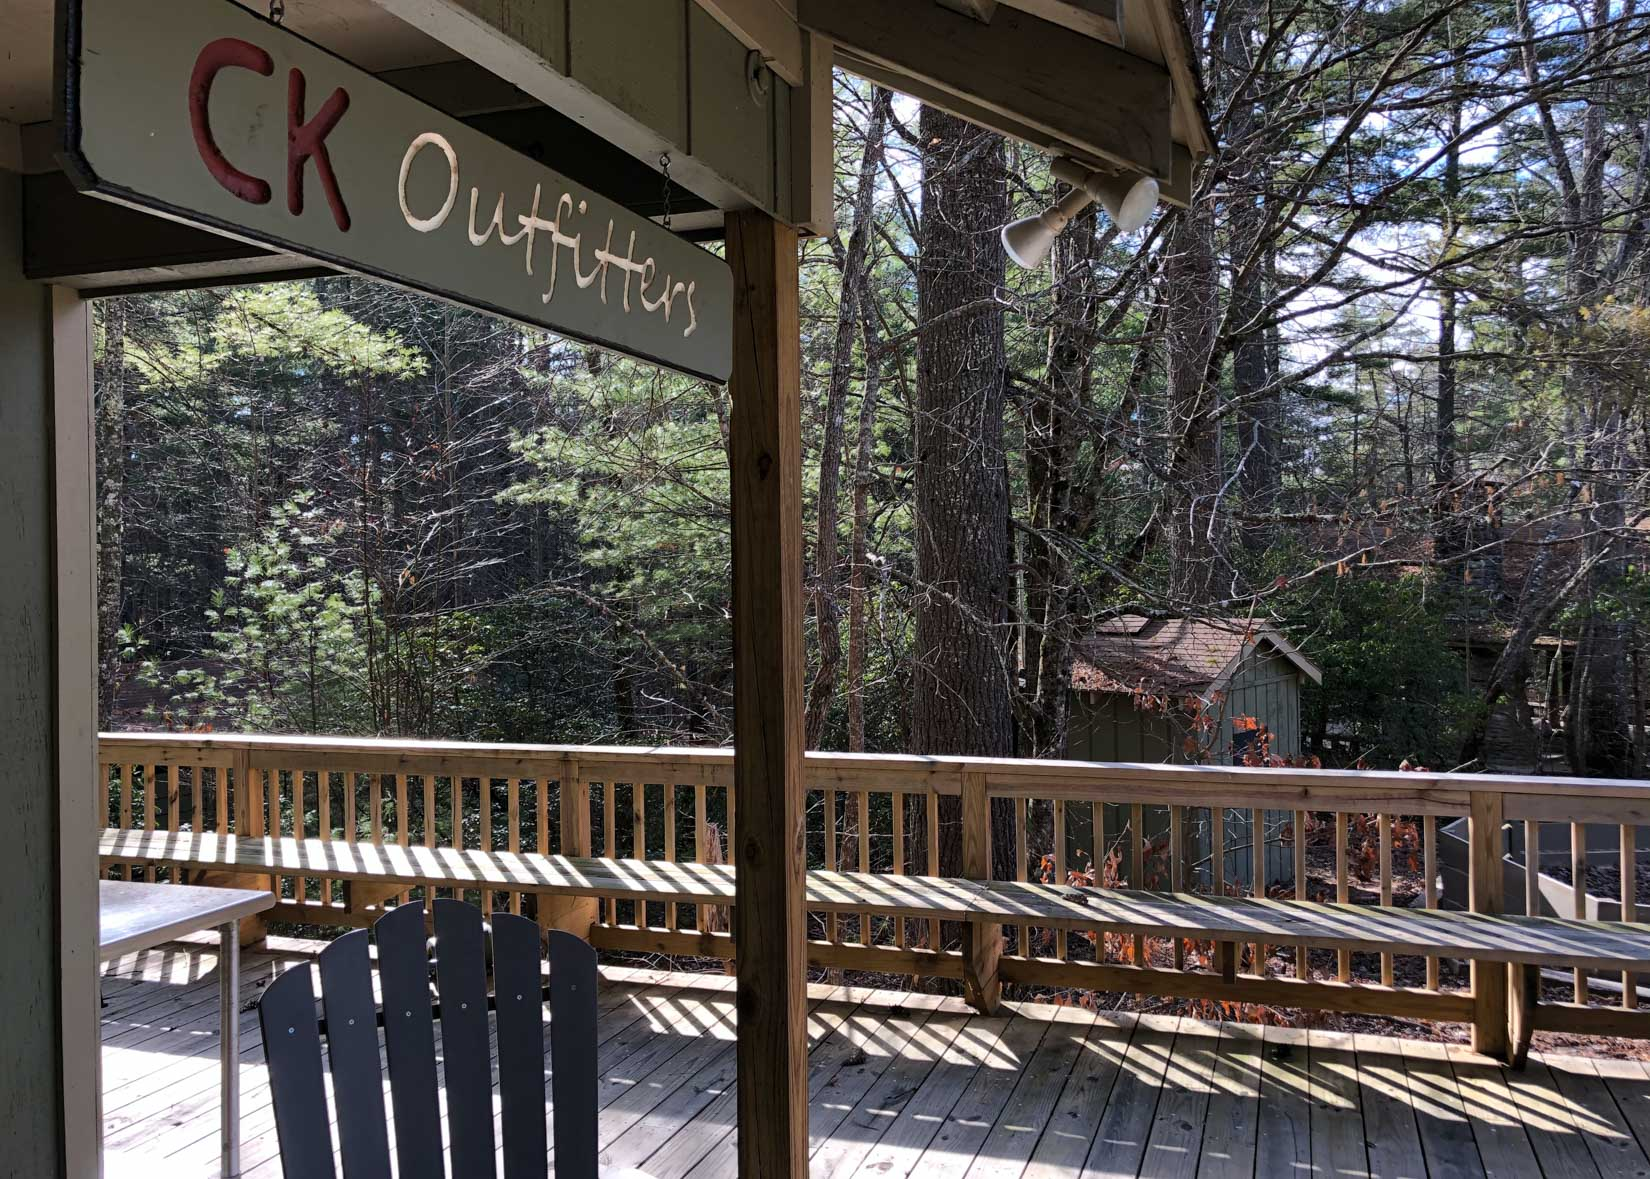 Exterior of the CK Outfitters